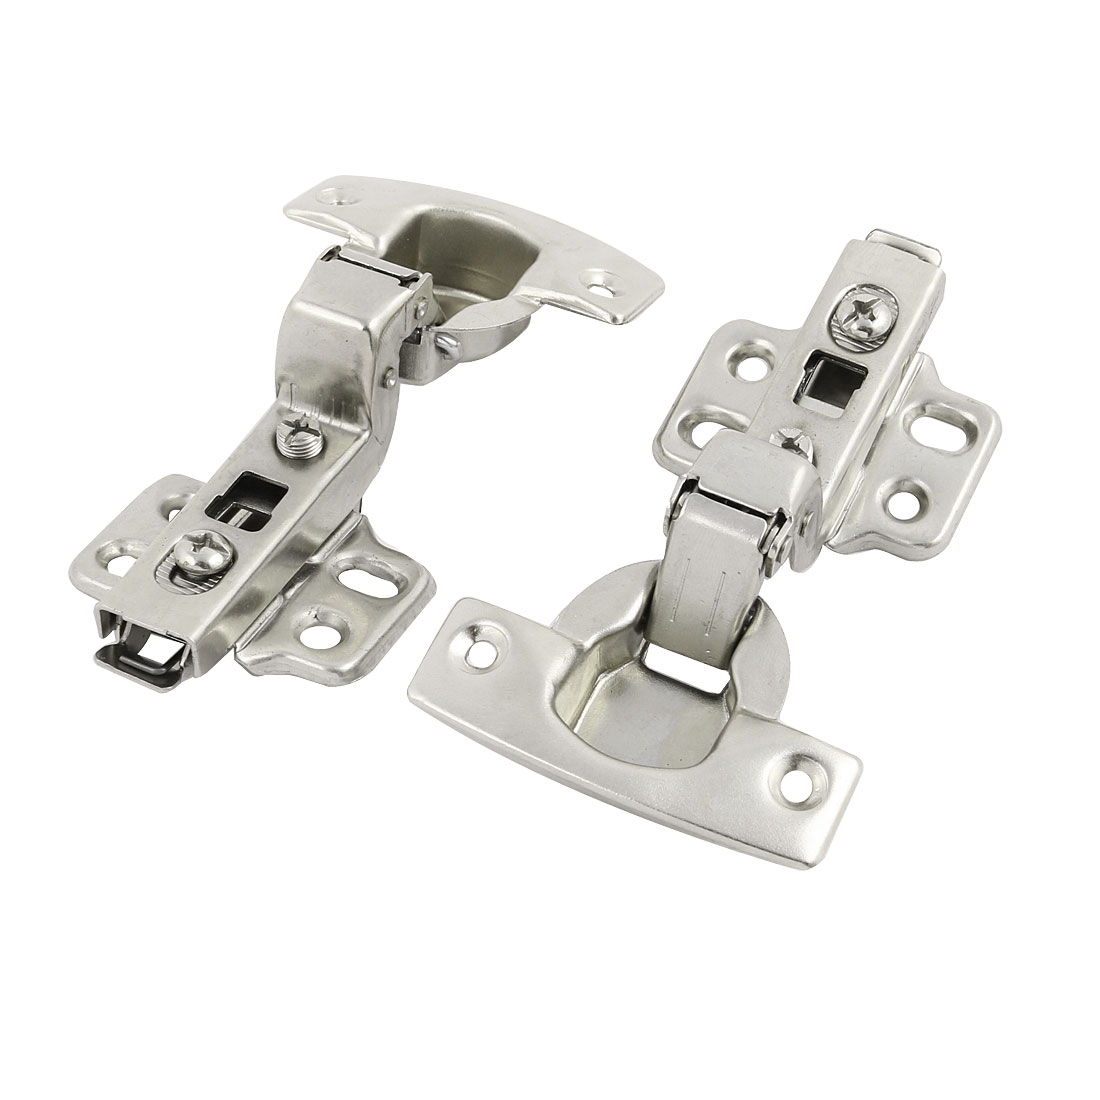 Stainless Steel Concealed Face Frame Self Closing Cabinet Hinge 2pcs